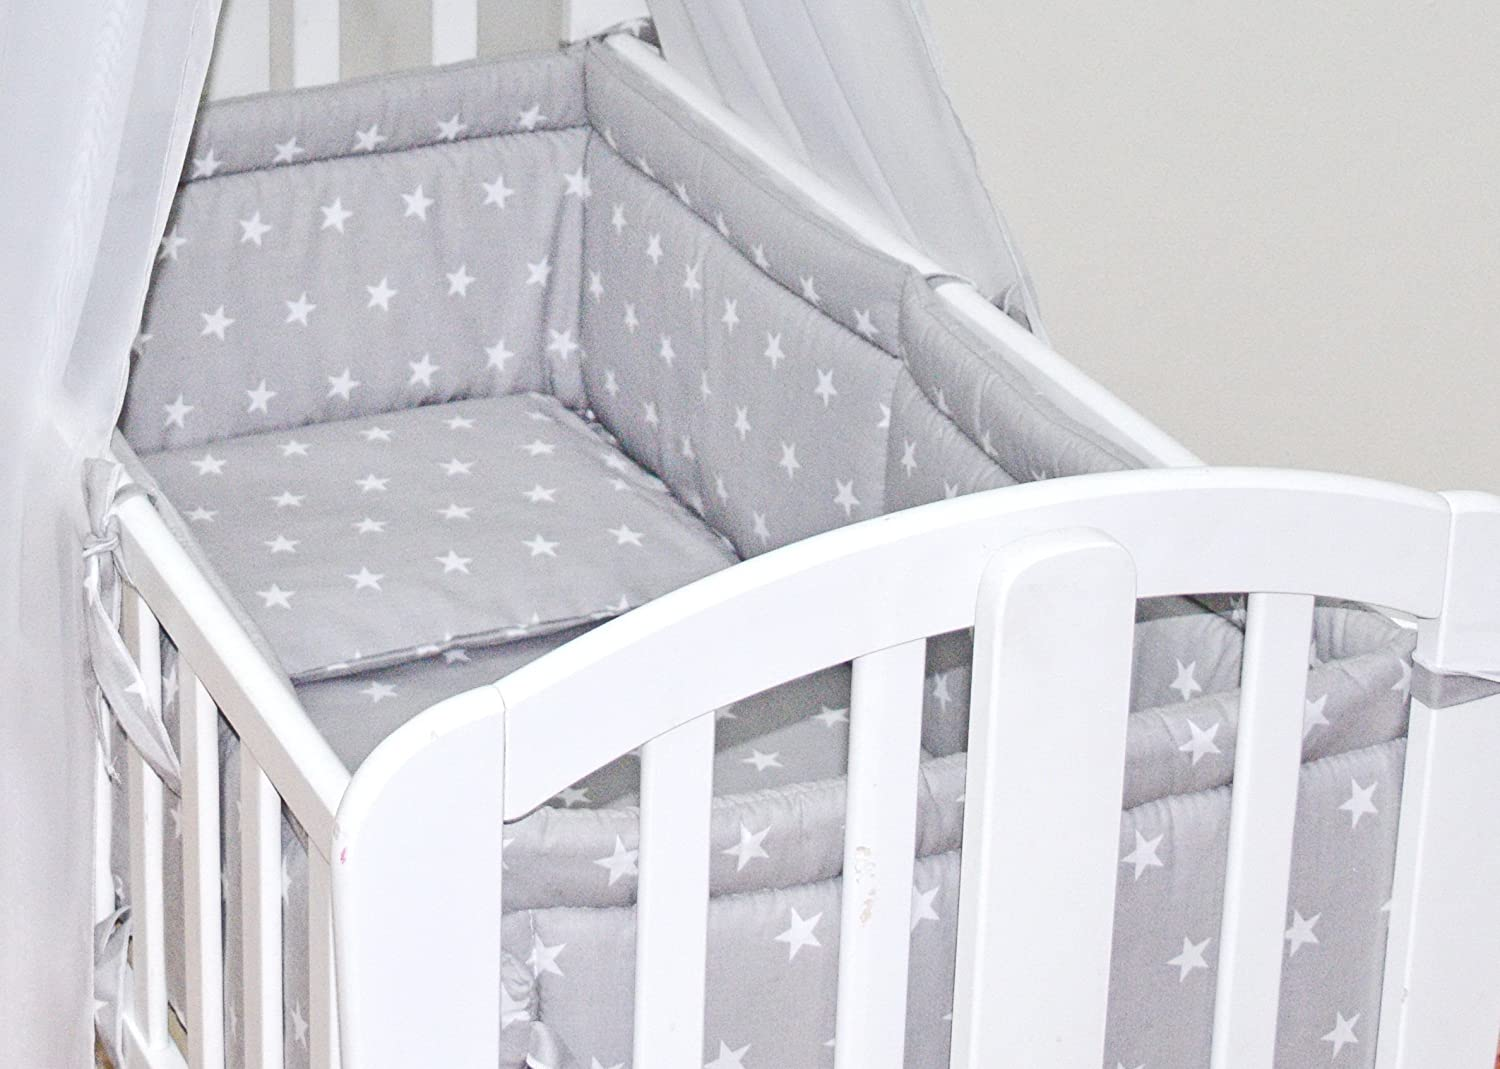 6pcs BABY SWINGING/ ROCKING CRIB /CRADLE BEDDING SET/ALL ROUND BUMPER 100% COTTON! (Grey Elephants) COKAY LTD